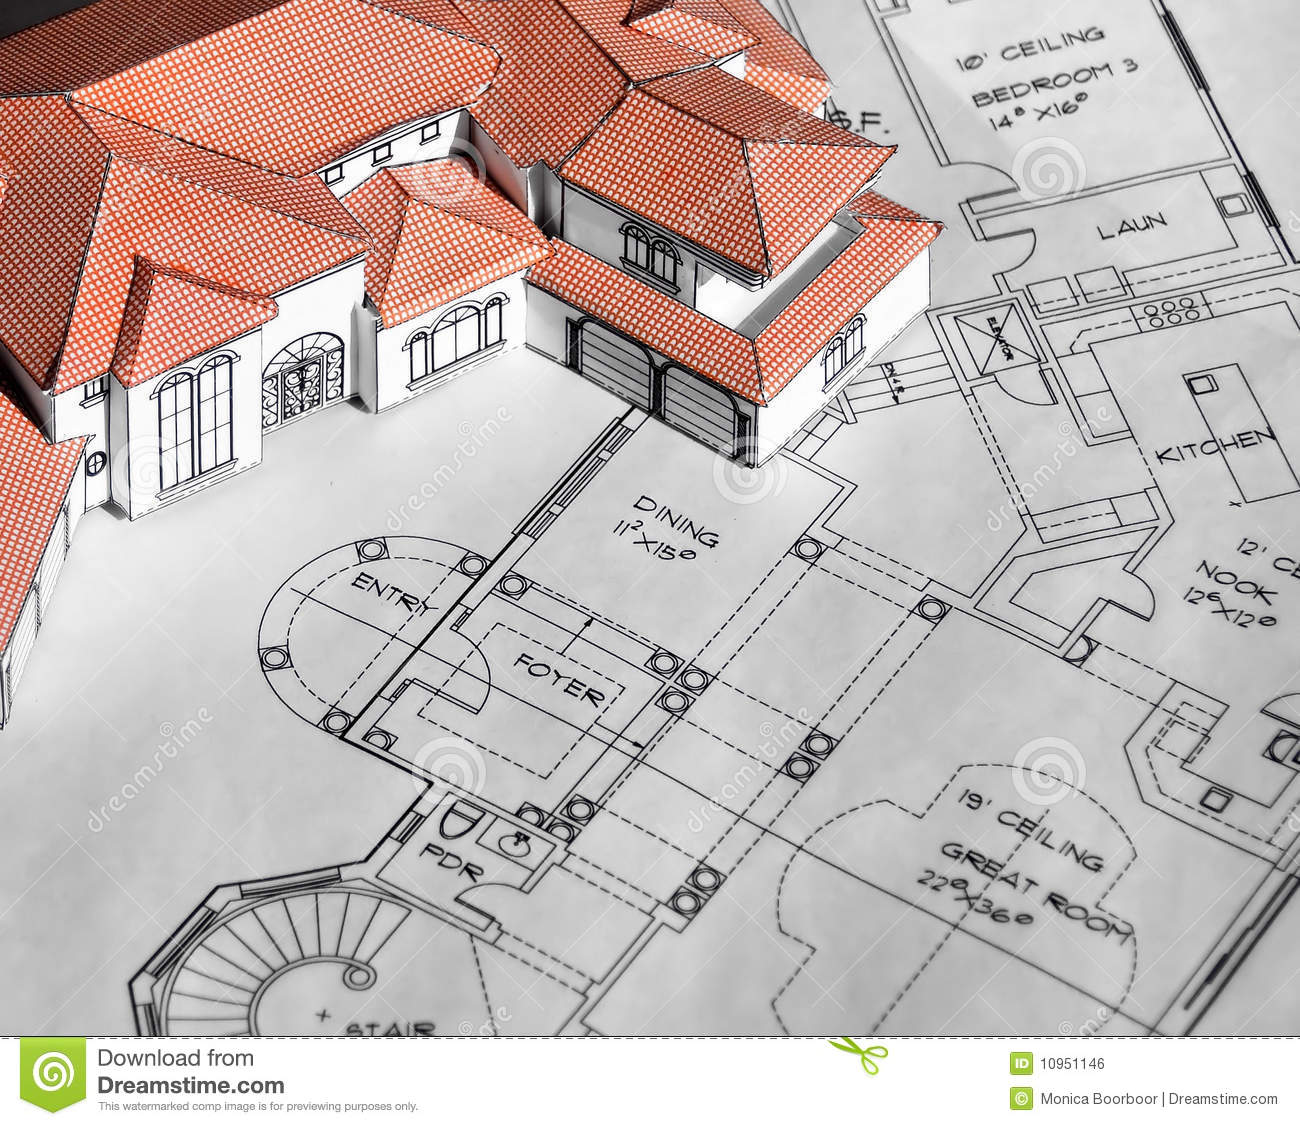 Royalty Free Stock Photo  Download Model home and blueprints. Model home and blueprints stock photo  Image of industry   10951146